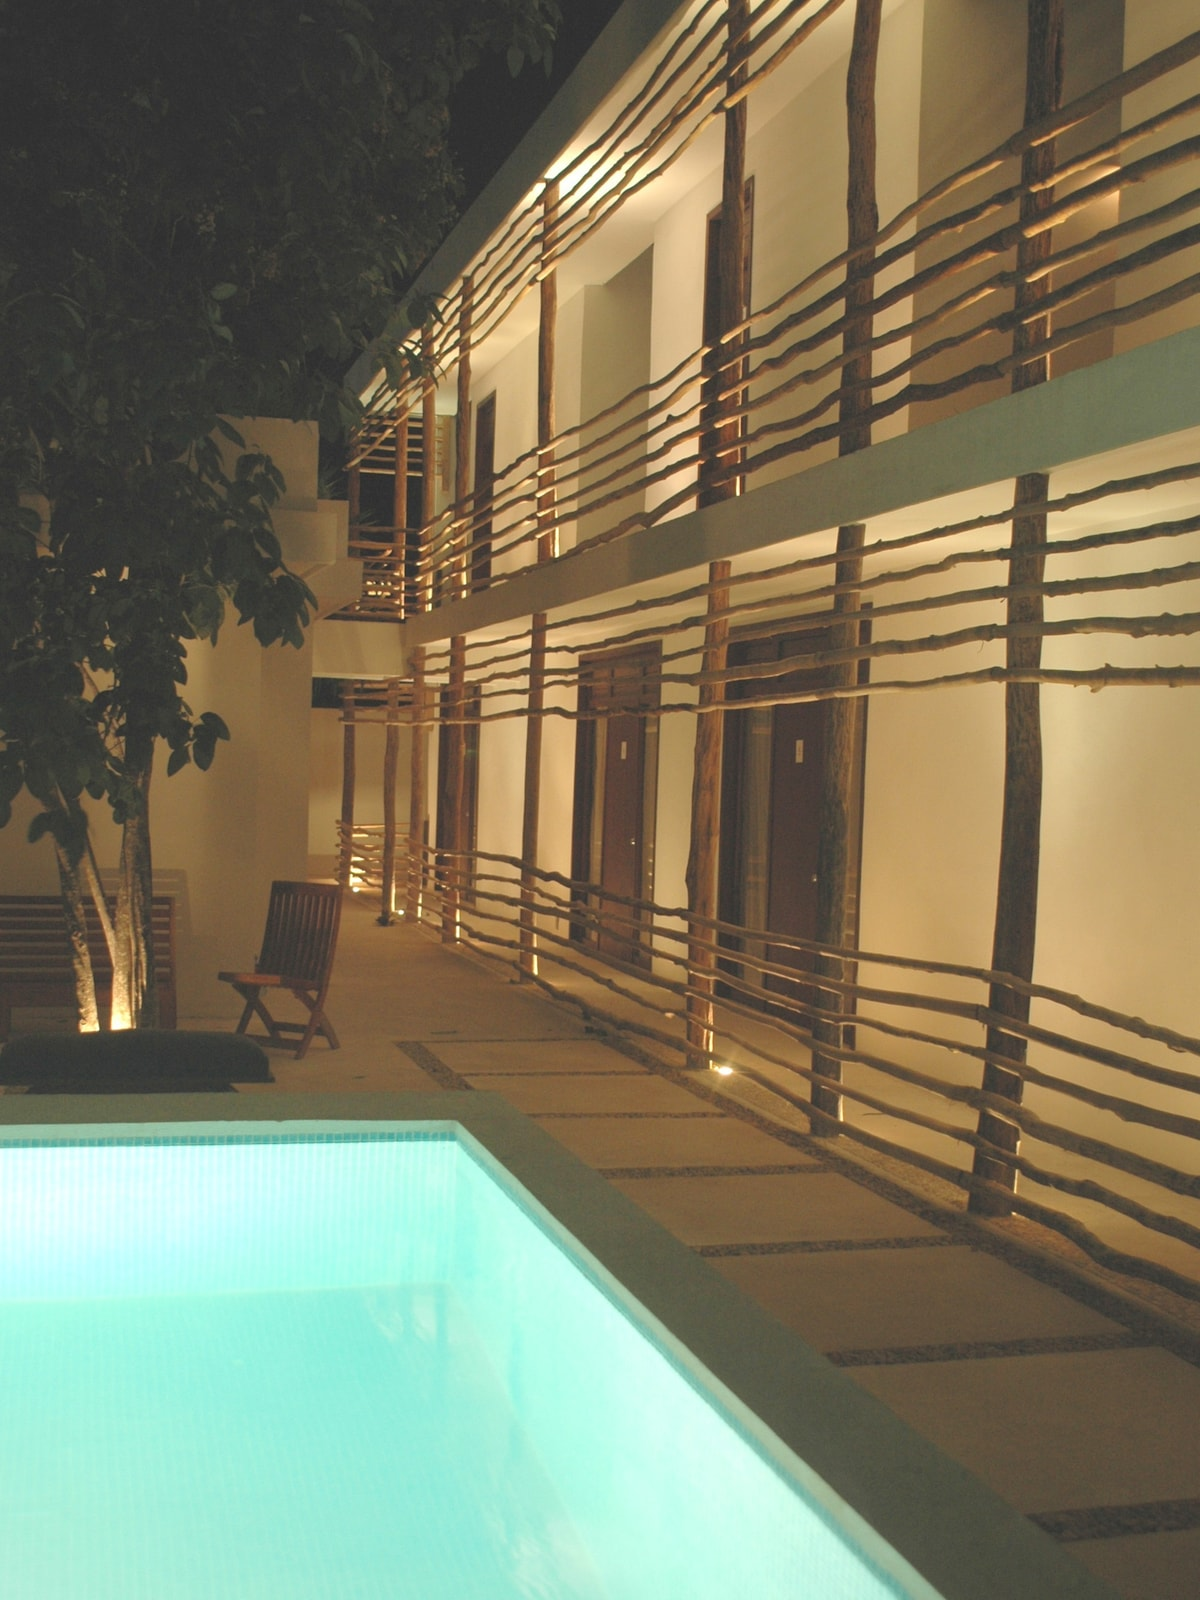 Hotel Latino is a small and cozy hotel located in